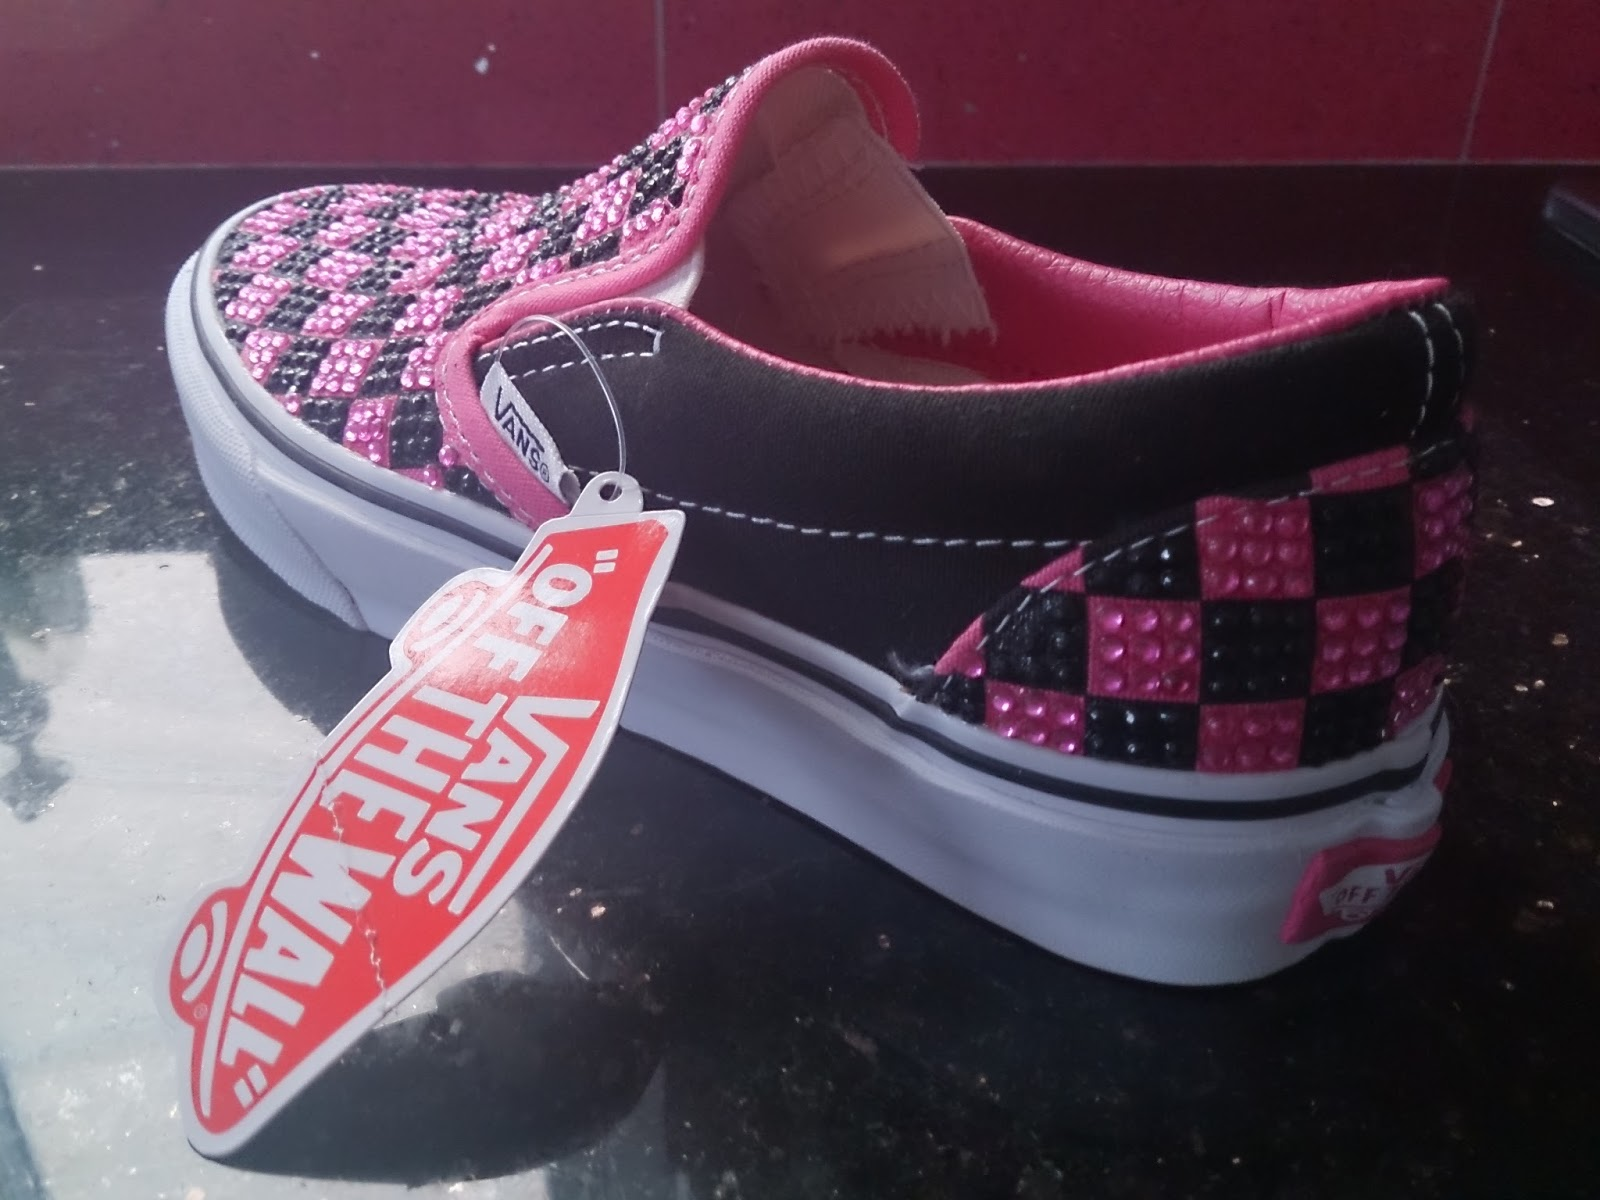 DIY Vans Off the Wall crystal rhinestone checkerboard pink and black Vans trainers shoes